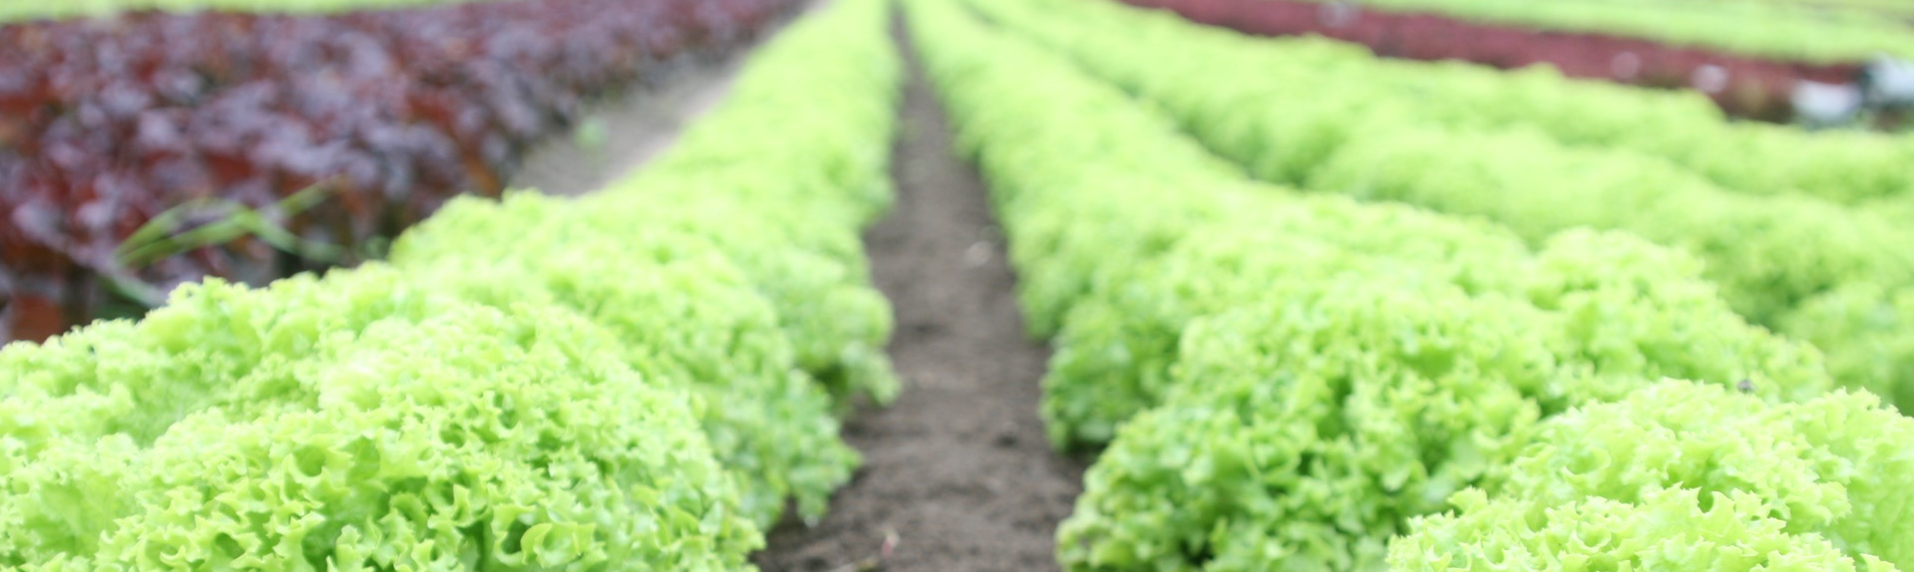 Farm rows of lettuce